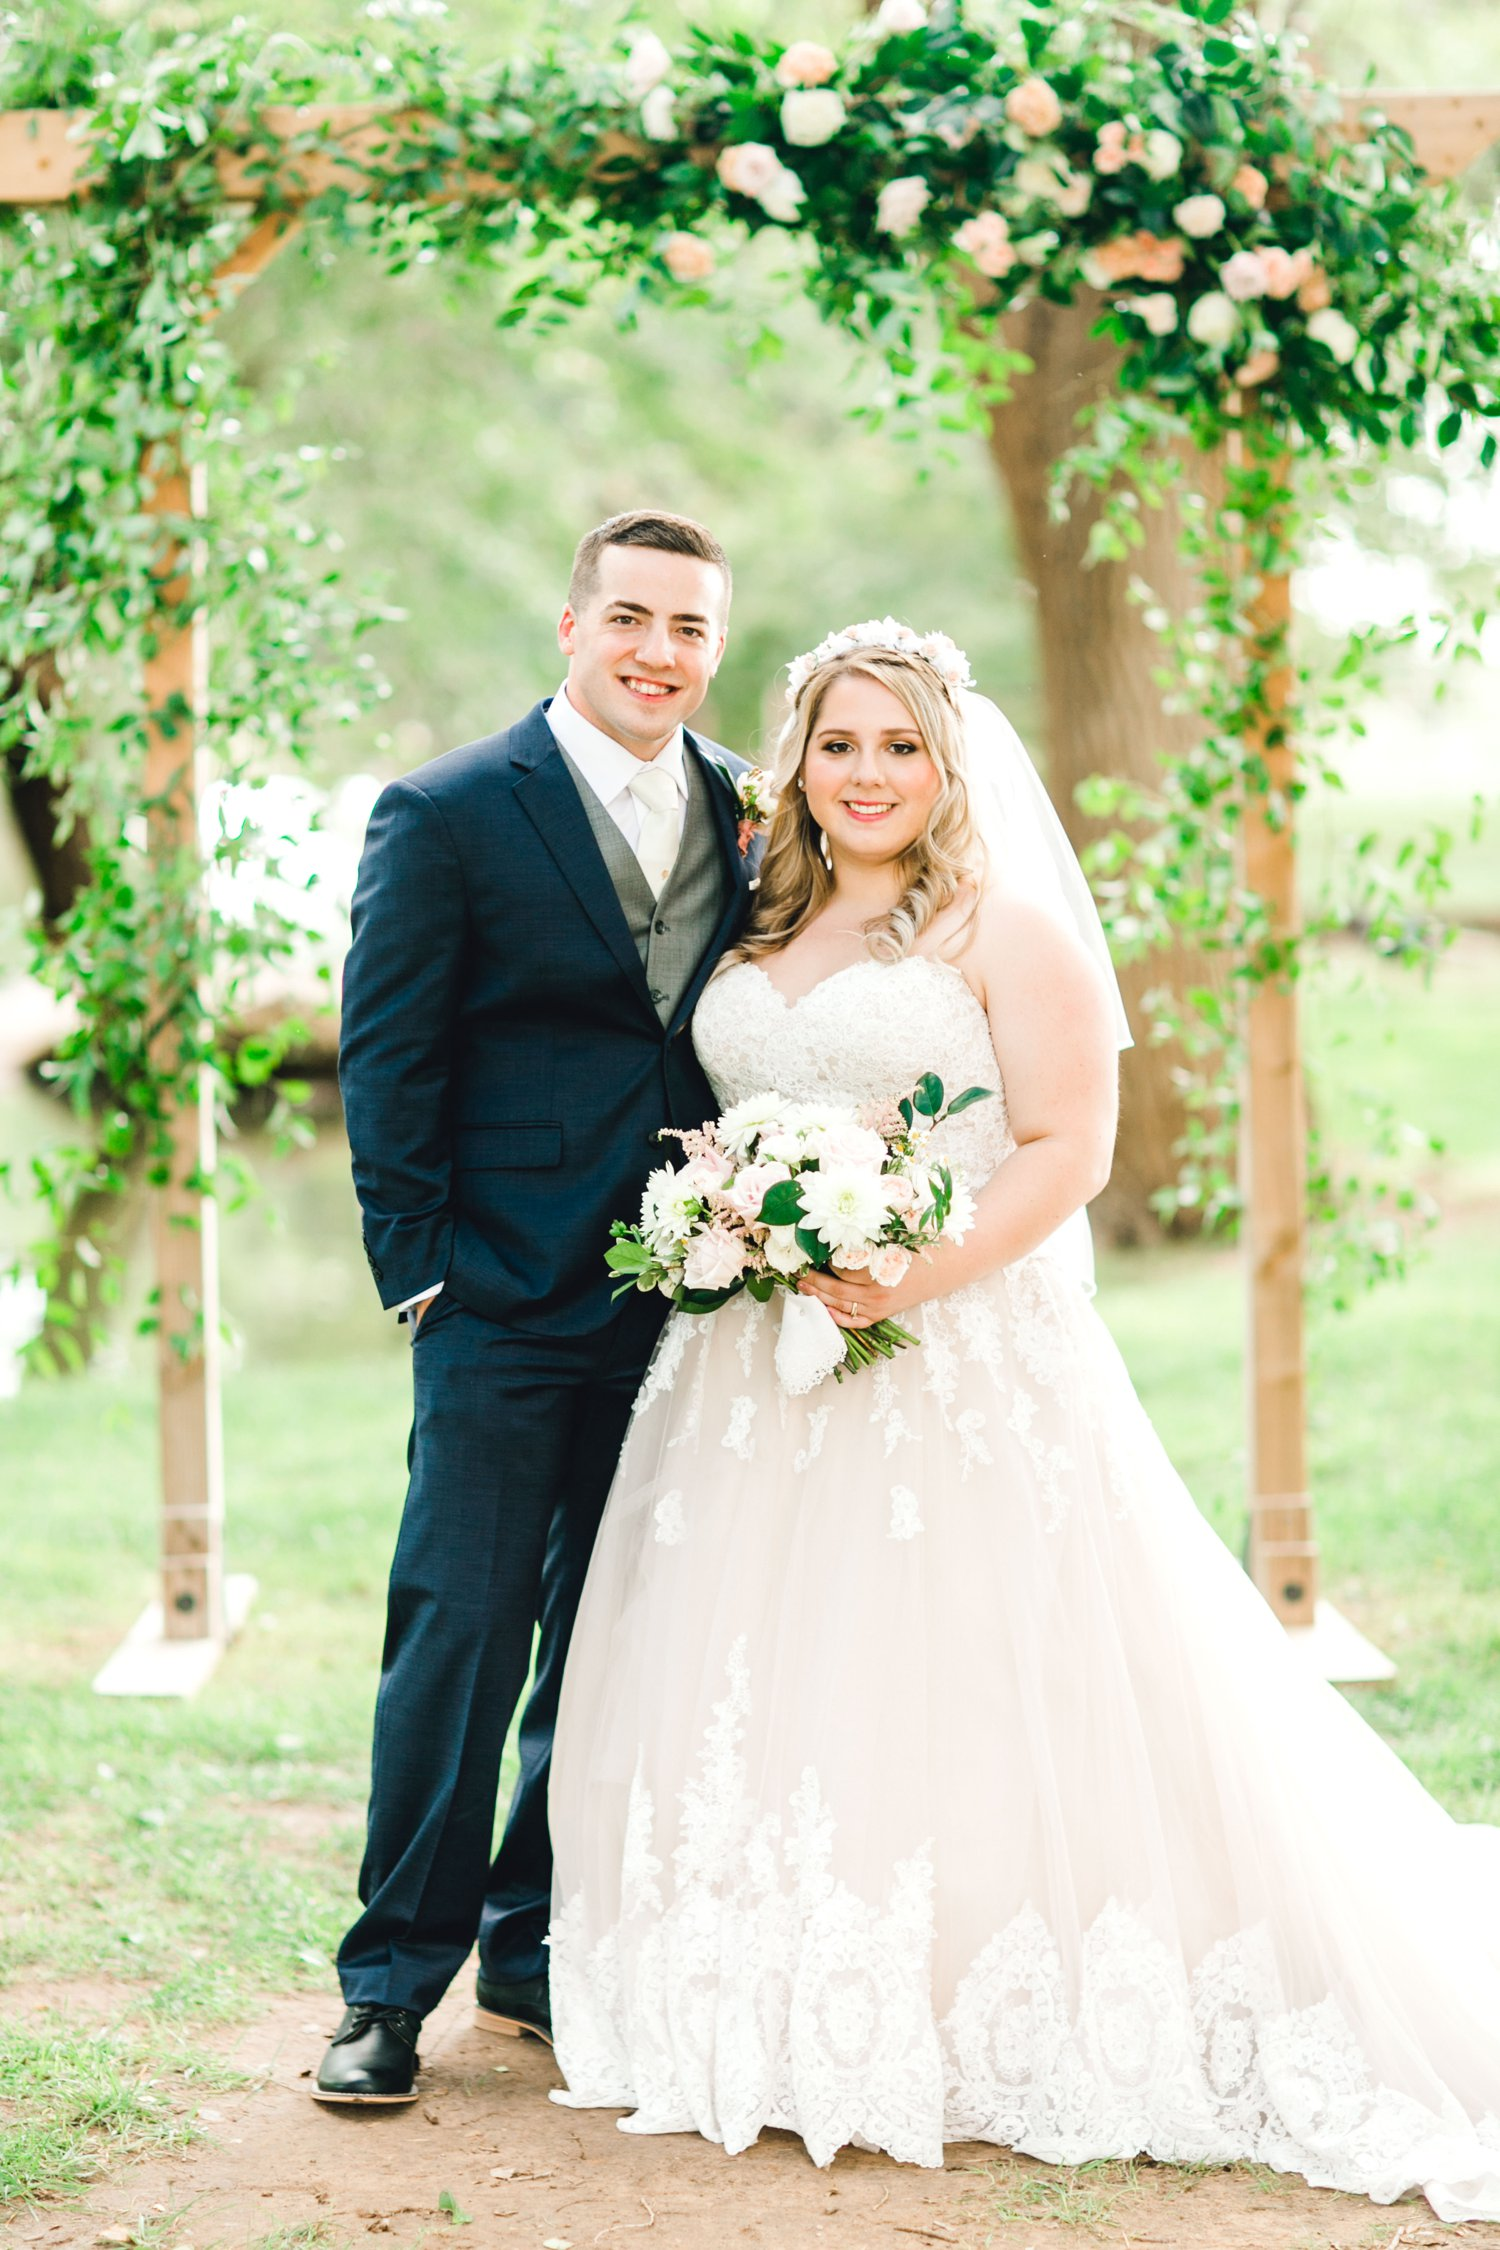 SARAH_AND_GEOFFREY_SHARP_SPIRIT_RANCH_WEDDING_ALLEEJ_LUBBOCK_TX_0092.jpg